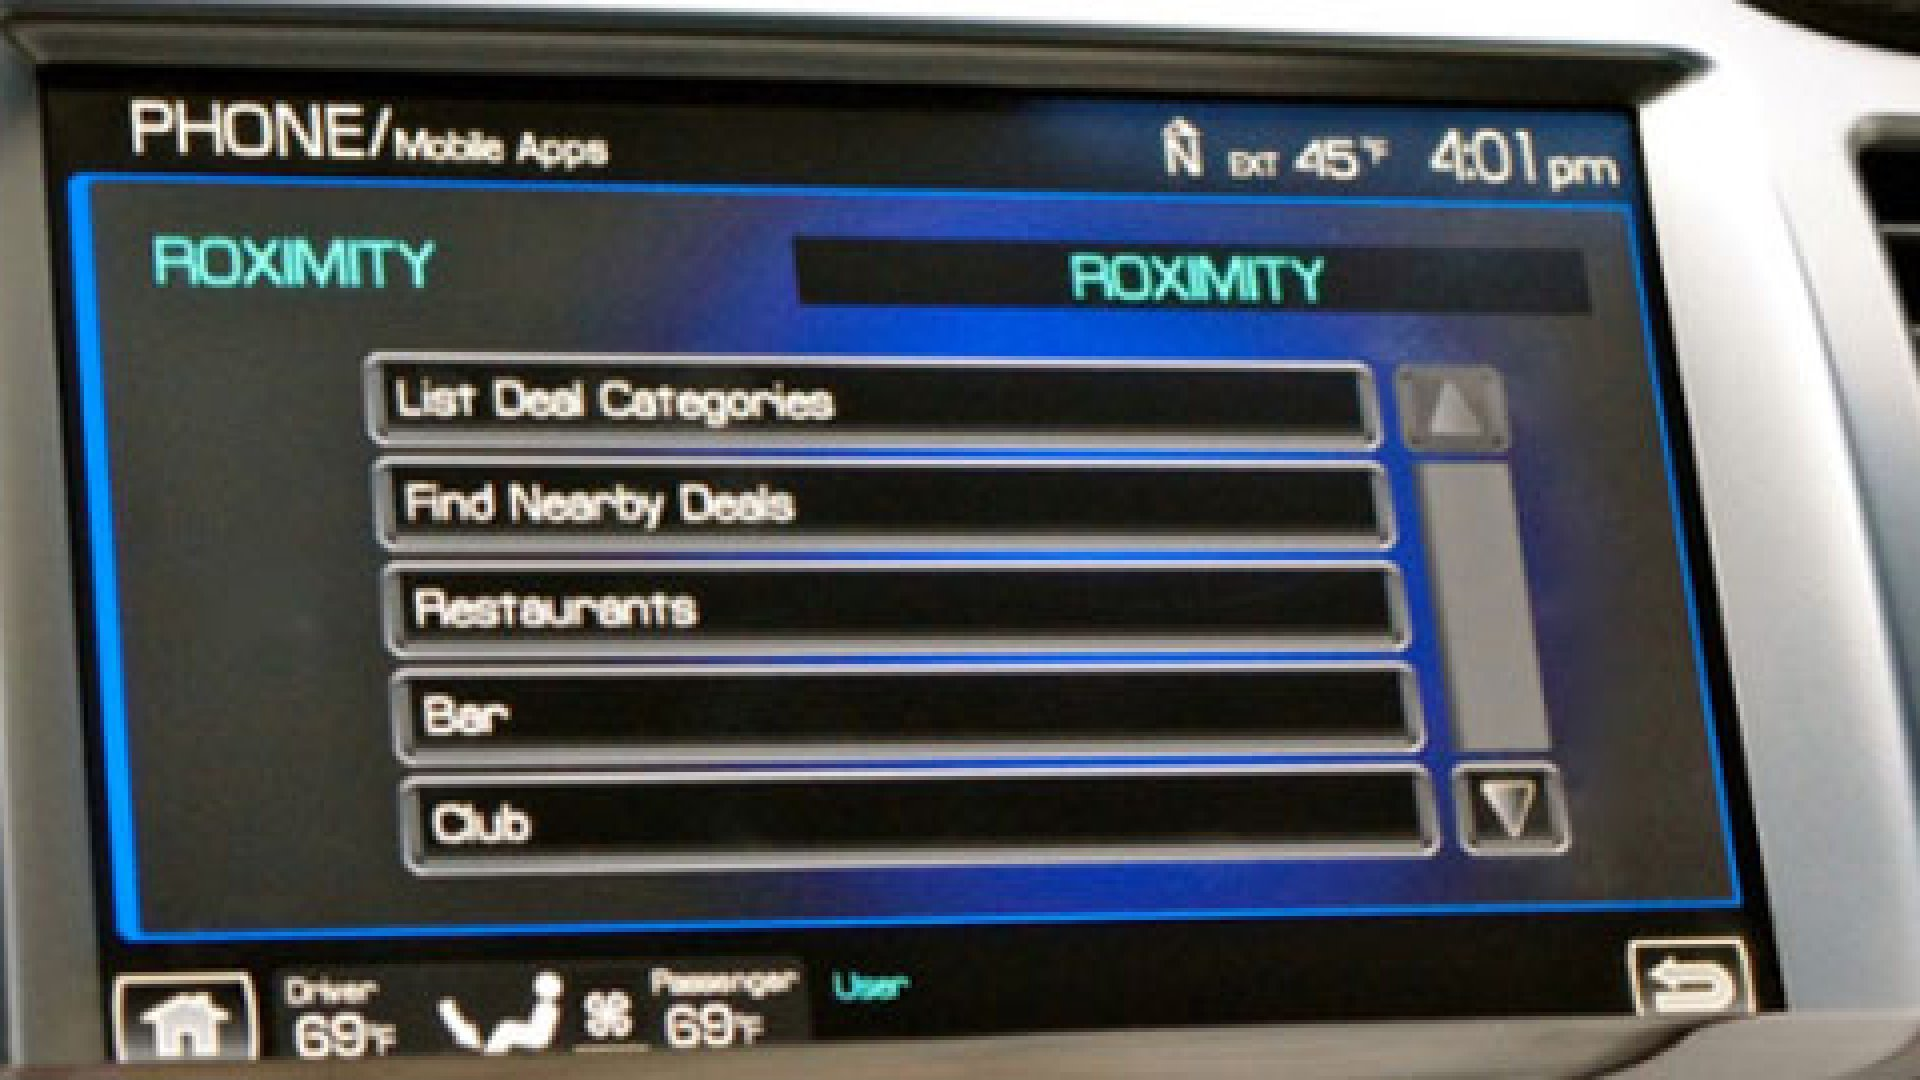 in 2012 Ford incorporated local deals app Roximity into some of its cars letting brick-and-mortar shops send coupons to customers on the go.